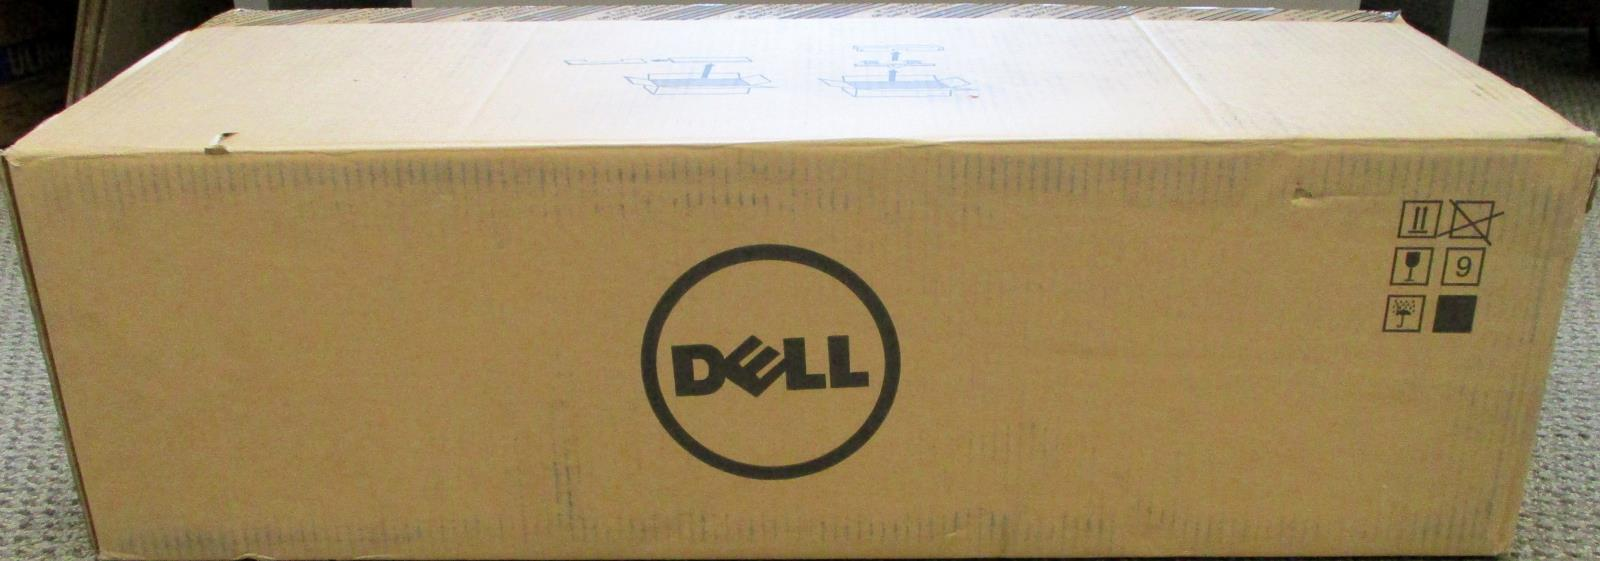 P//N: 0HXDW0 Dell Dual Flat Panel Monitor Stand for Dual Monitor Setup NEW!!!!!